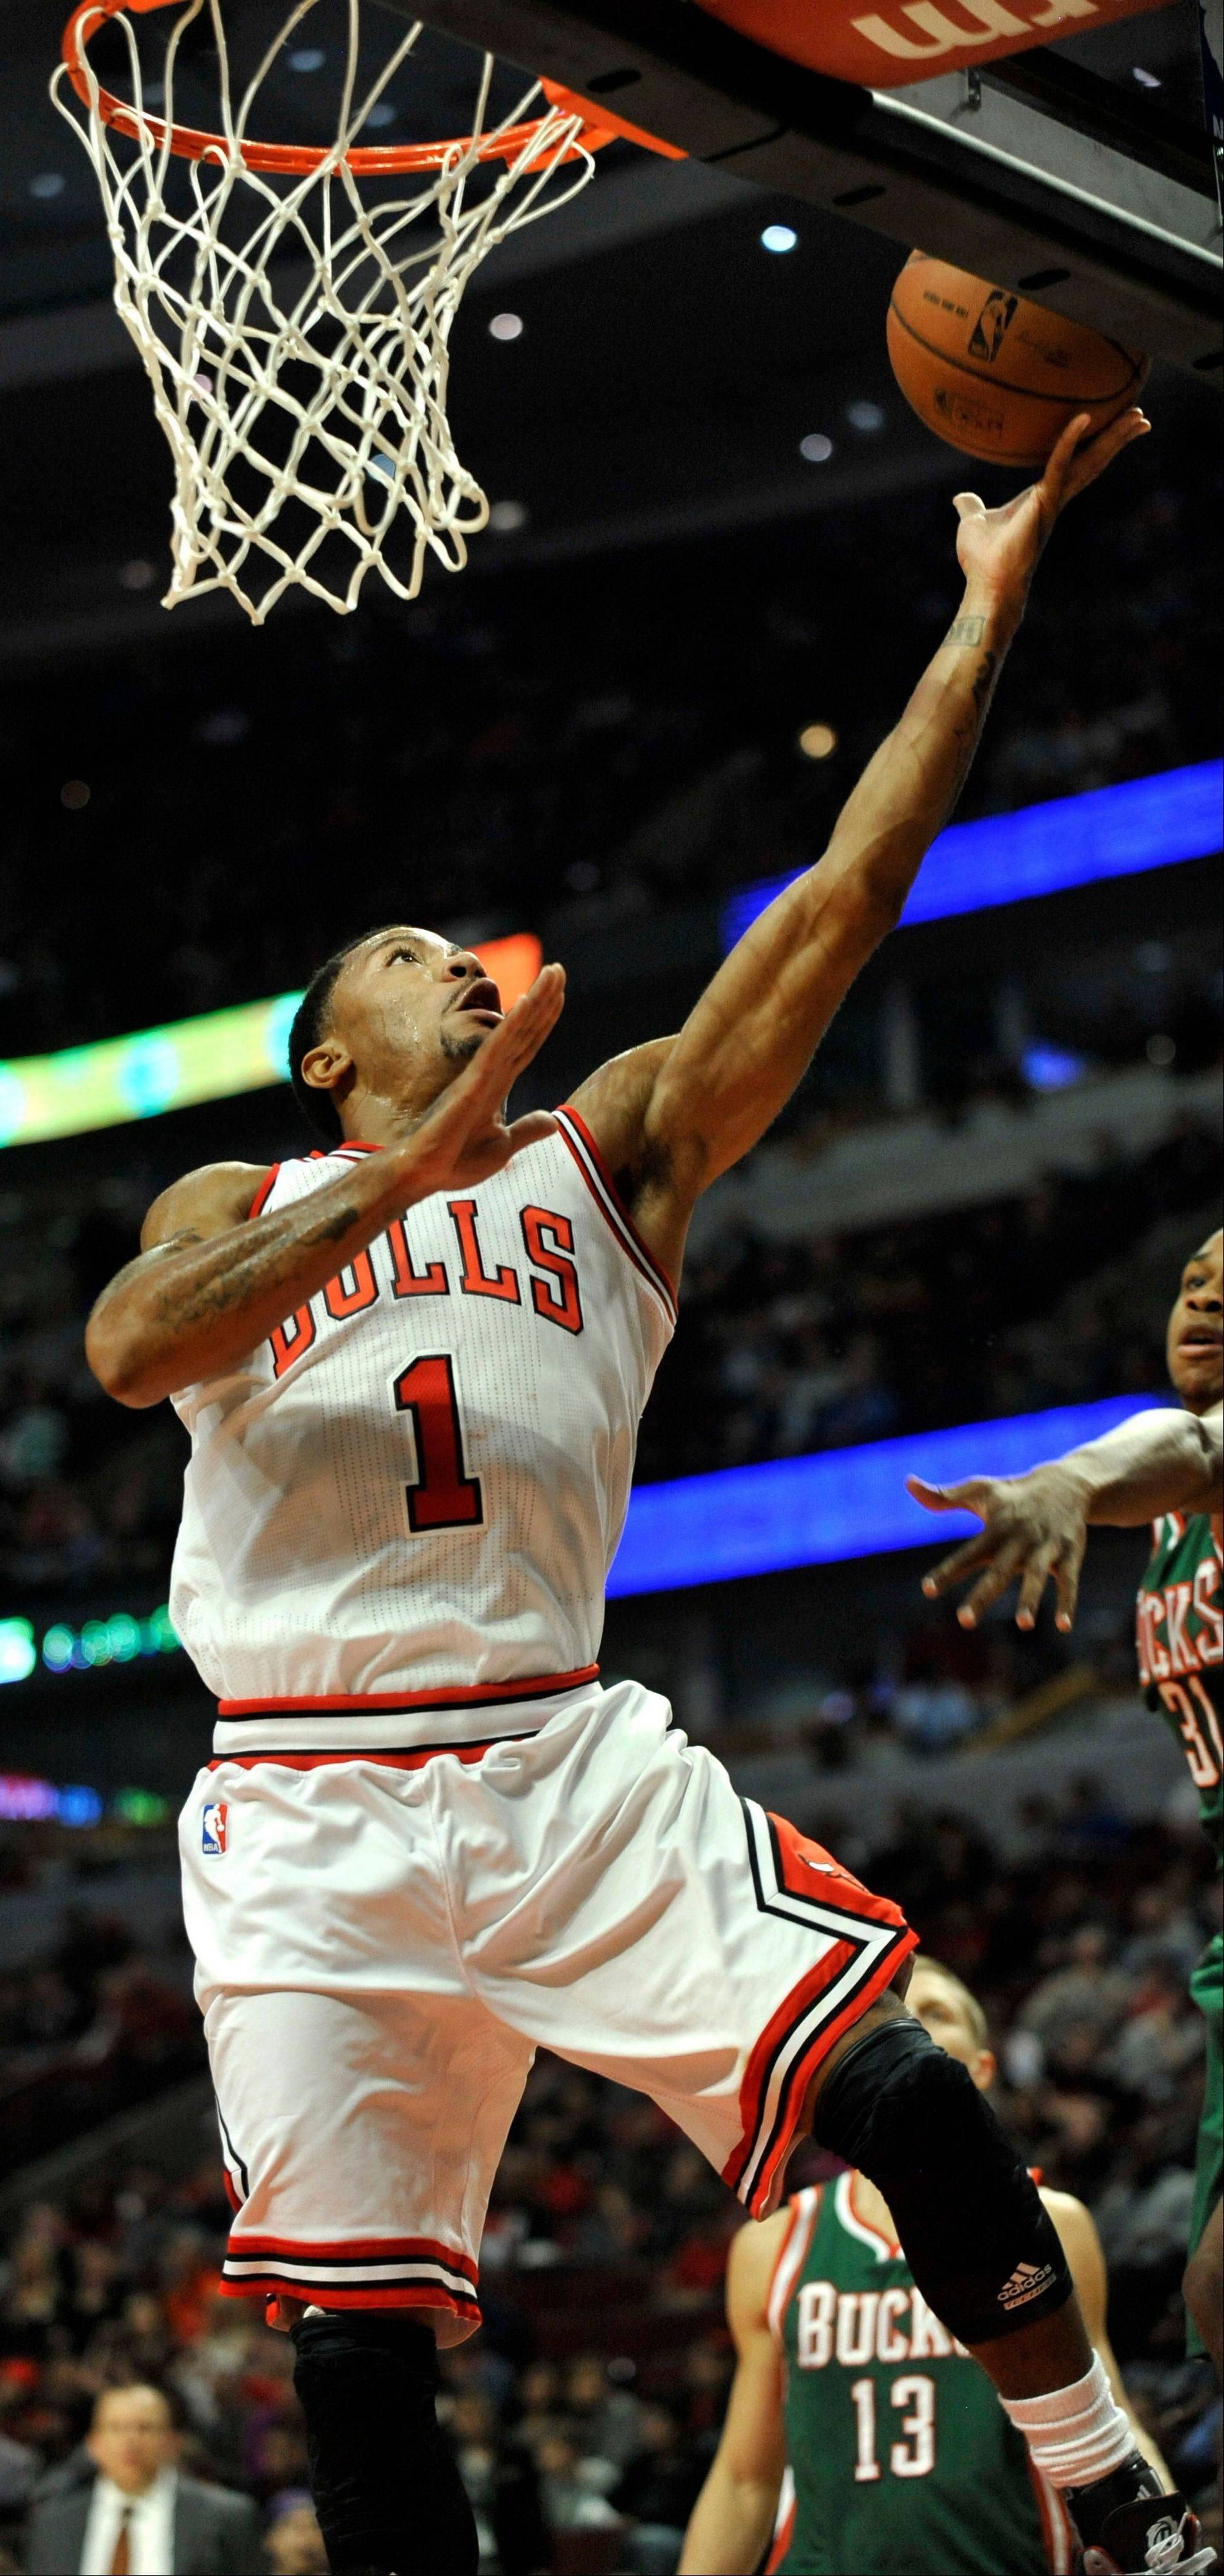 The Bulls' Derrick Rose goes up for a shot against the Milwaukee Bucks during the first half of a preseason game Monday in Chicago.